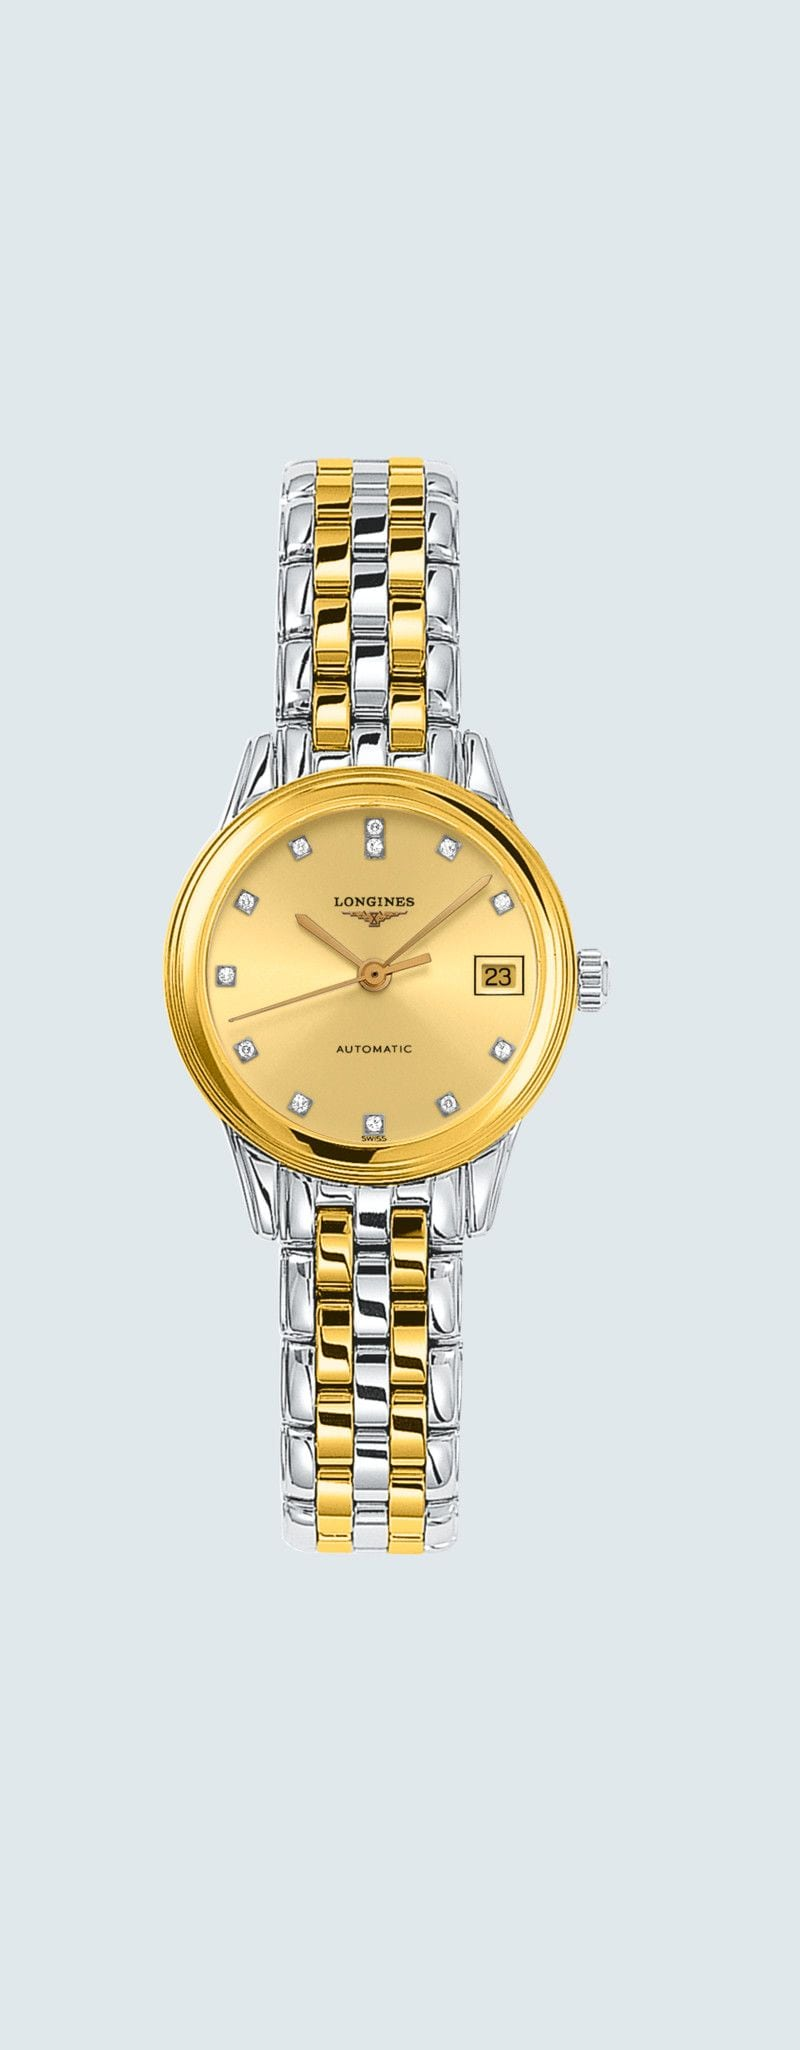 26.00 mm Stainless steel and yellow PVD coating case with Gilt dial and Stainless steel and yellow